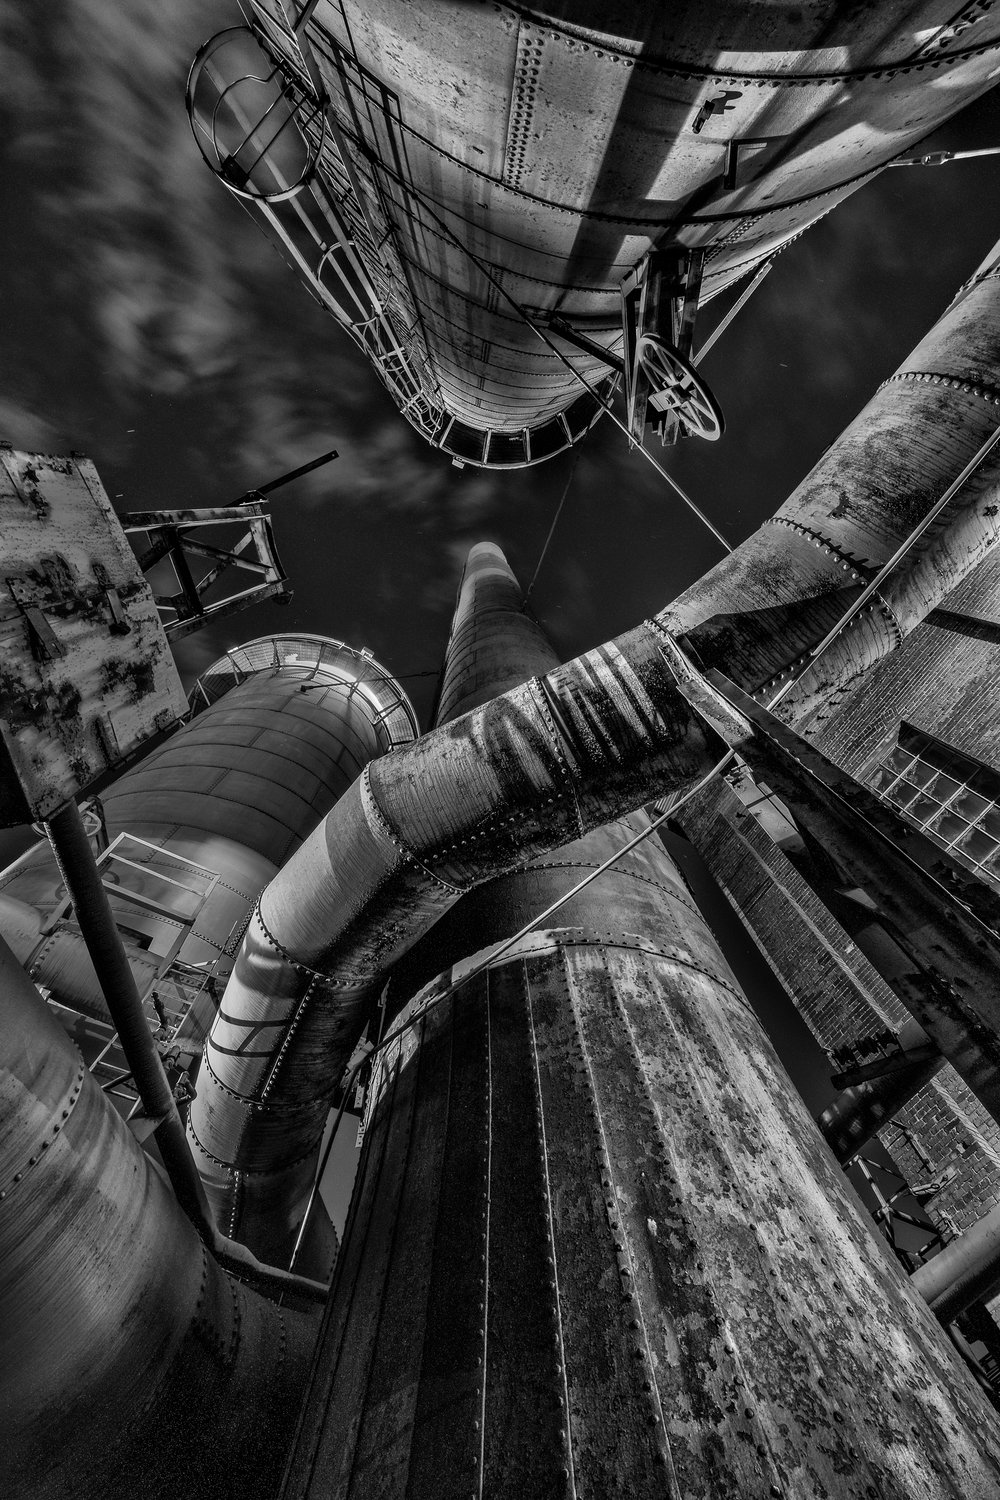 Sloss Furnaces National Historic Landmark—WAITLIST ONLY - Focus on black-and-white light painting